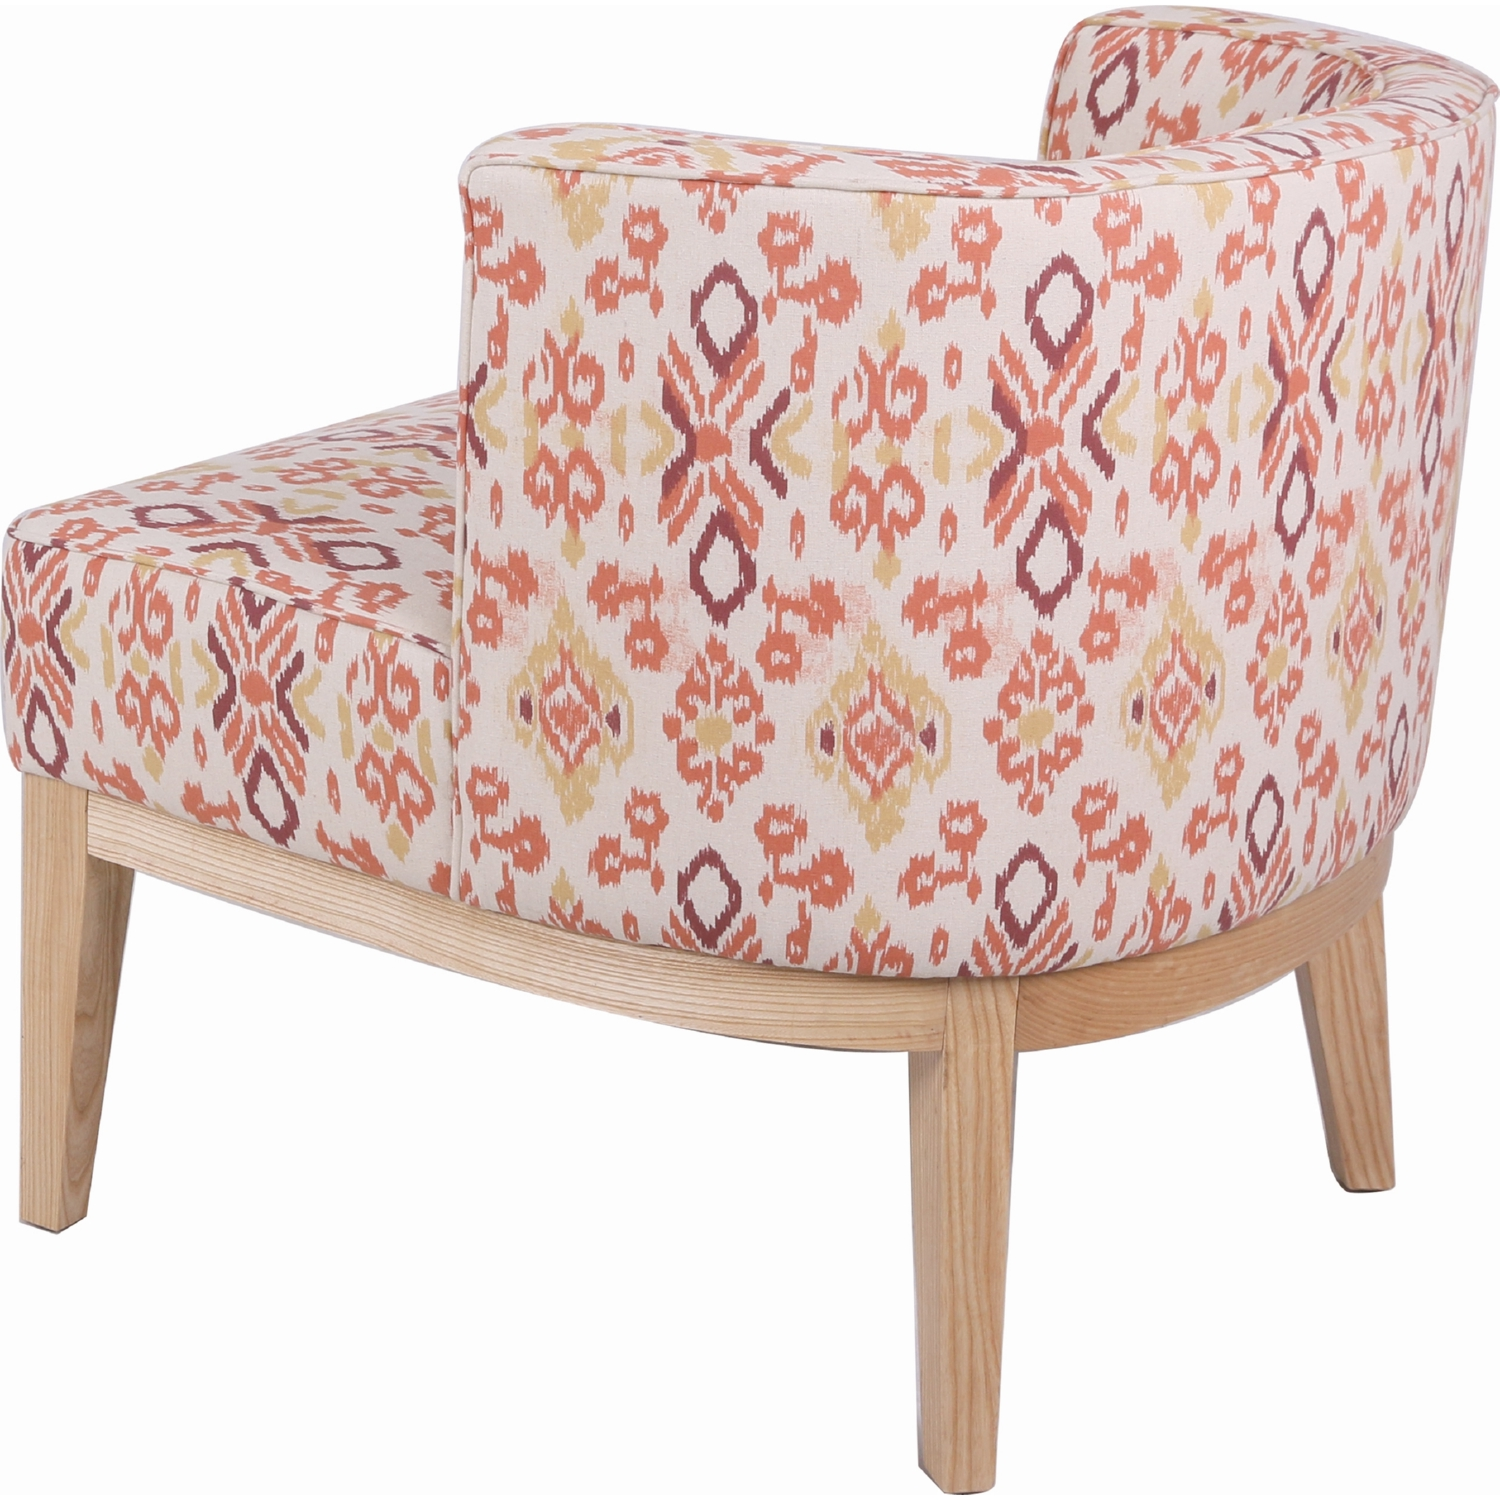 New Pacific Direct 156 Galen Low Back Accent Chair in